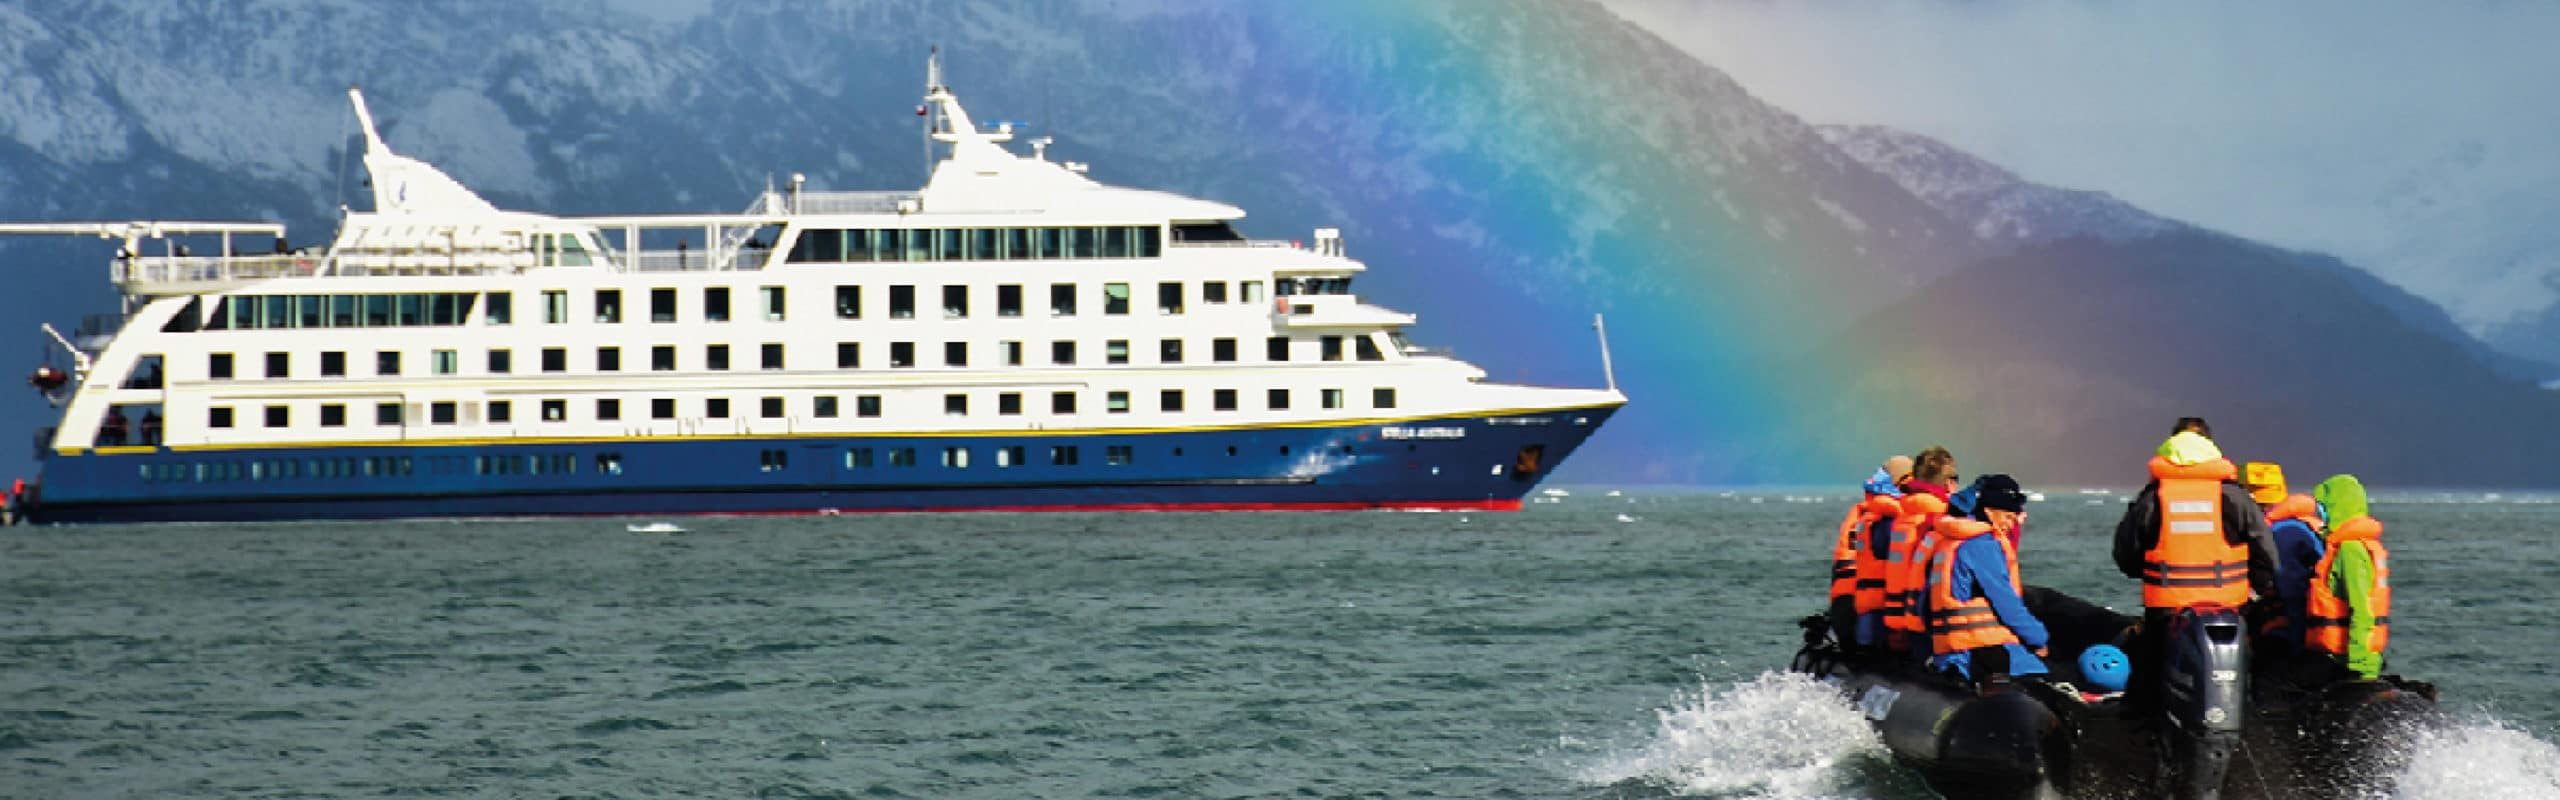 Australis Cruise expedition to Cape Horn and southern fjords in Patagonia